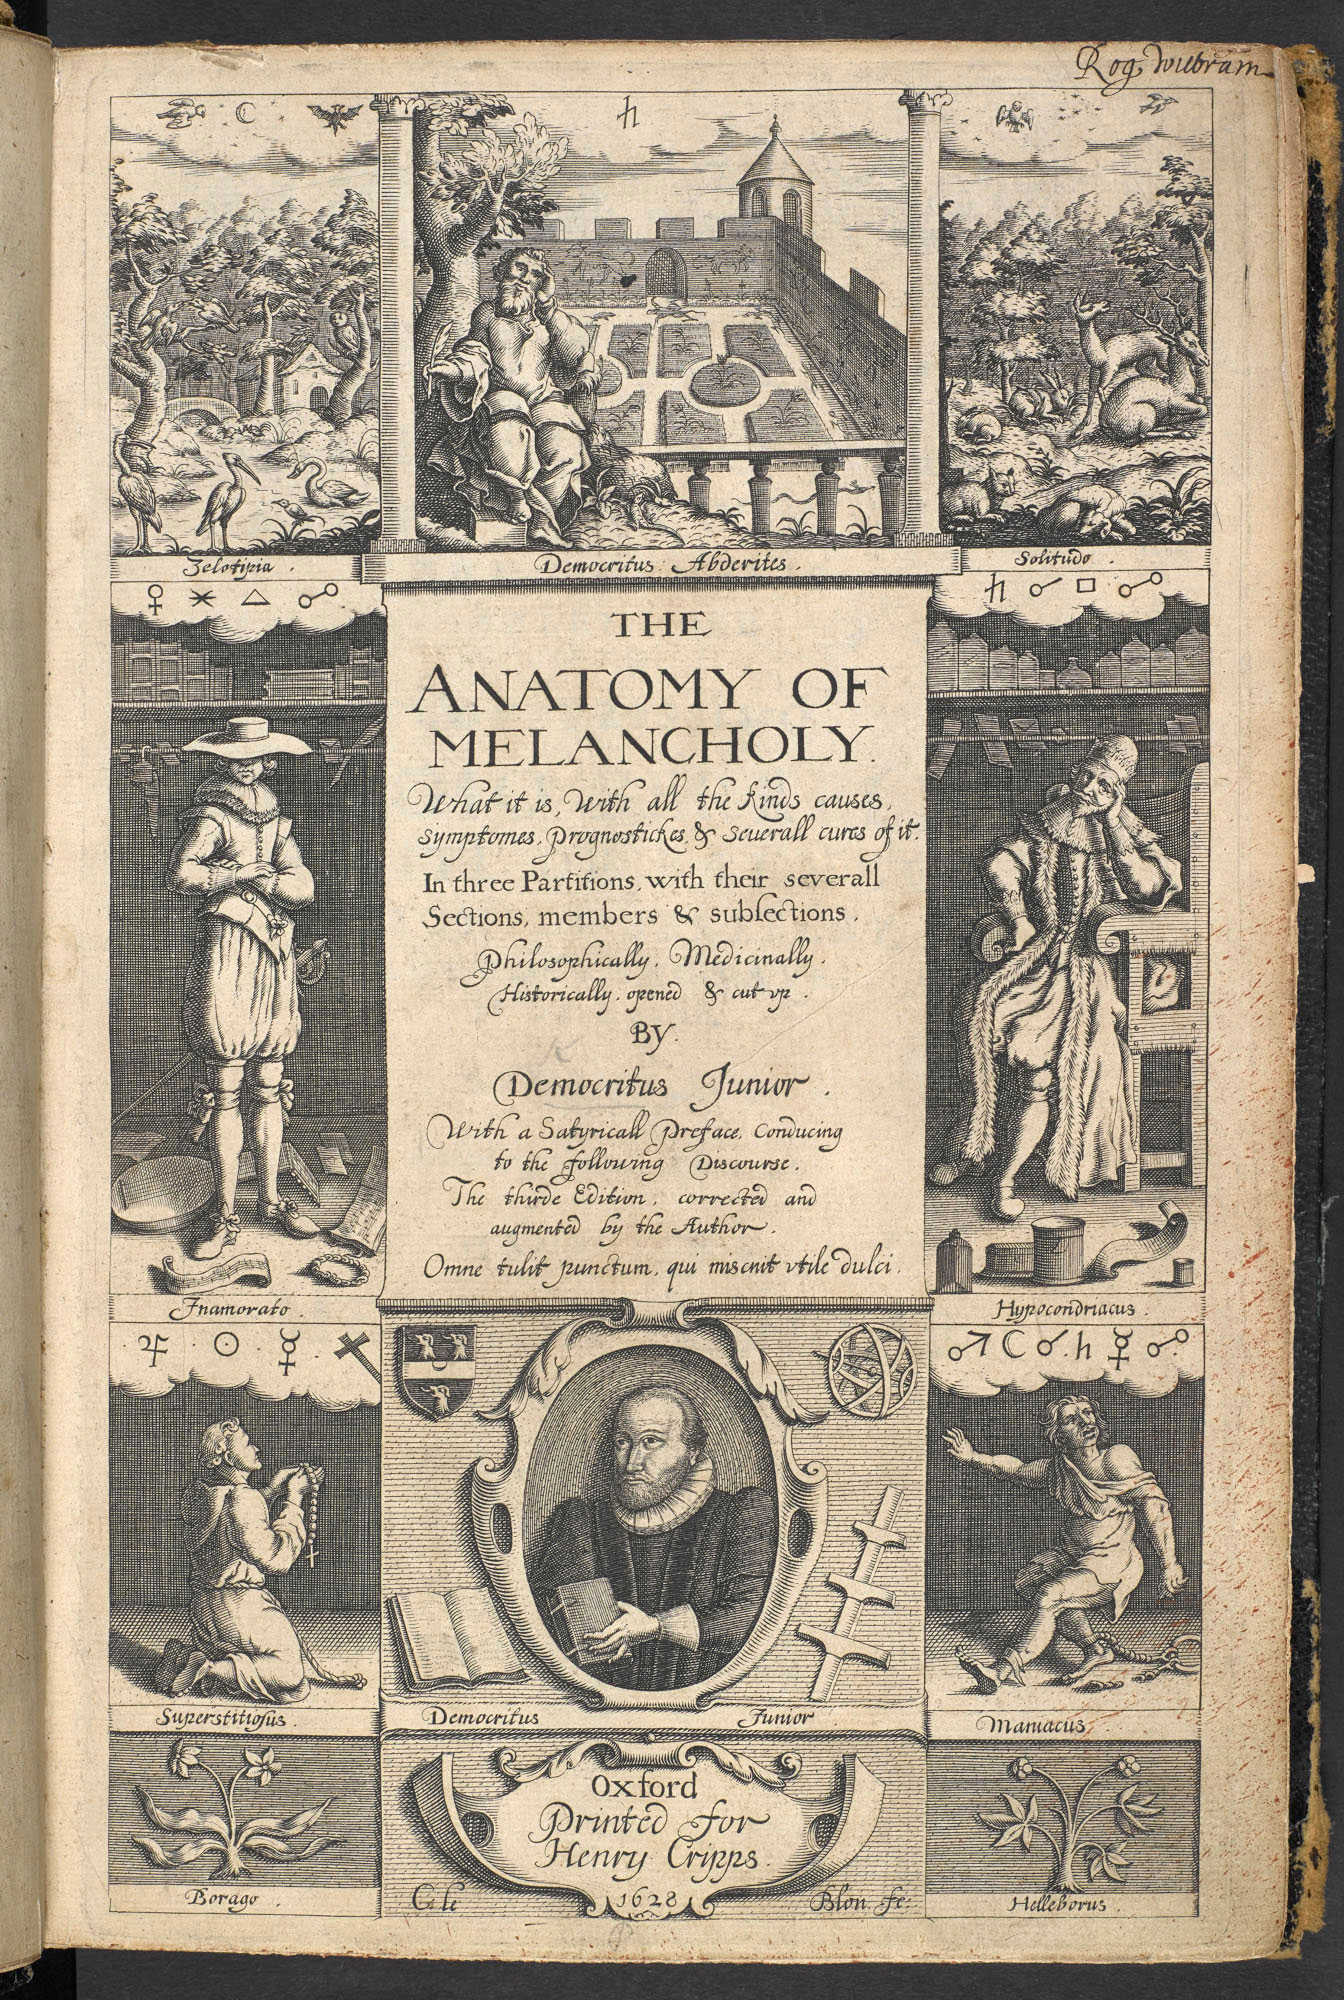 Anatomy of Melancholy, by Robert Burton